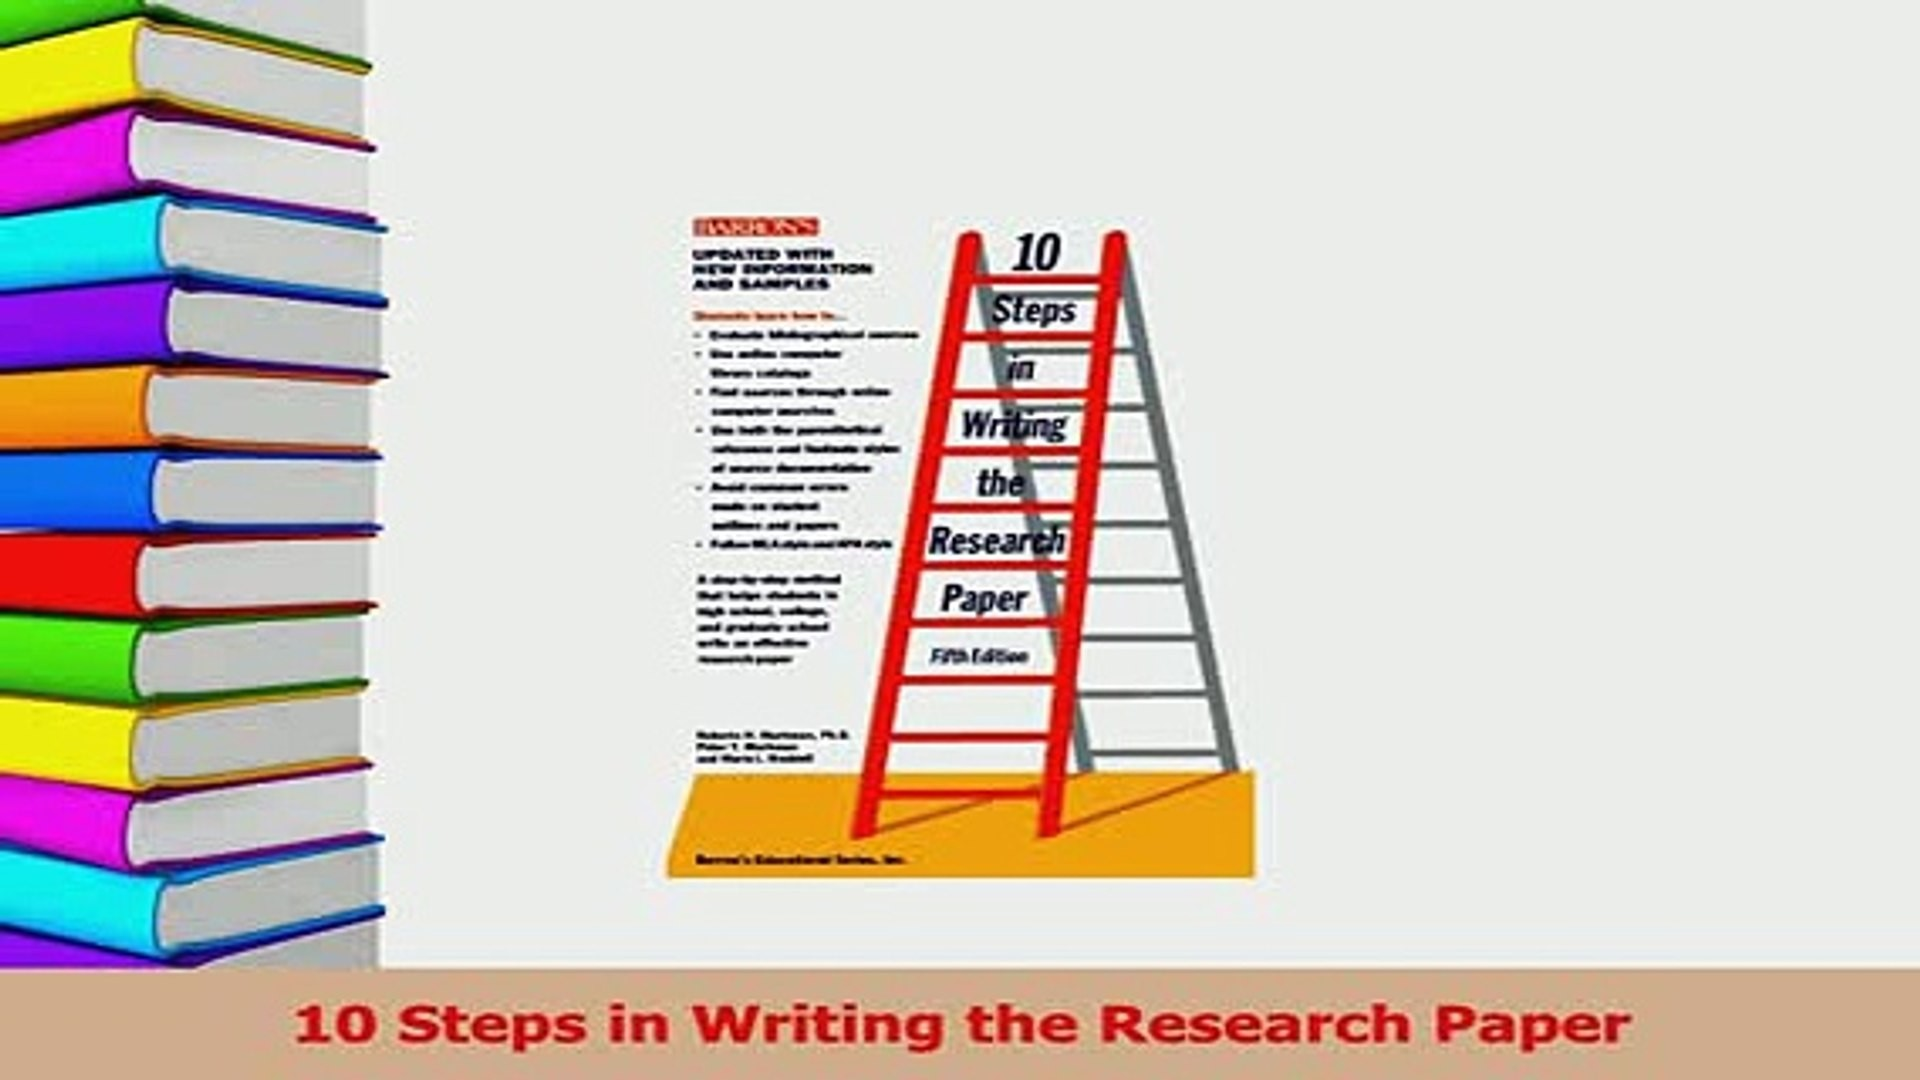 018 Steps For Writing Research Paper X1080 Unforgettable 10 A In The Markman Pdf To Write Basic 1920